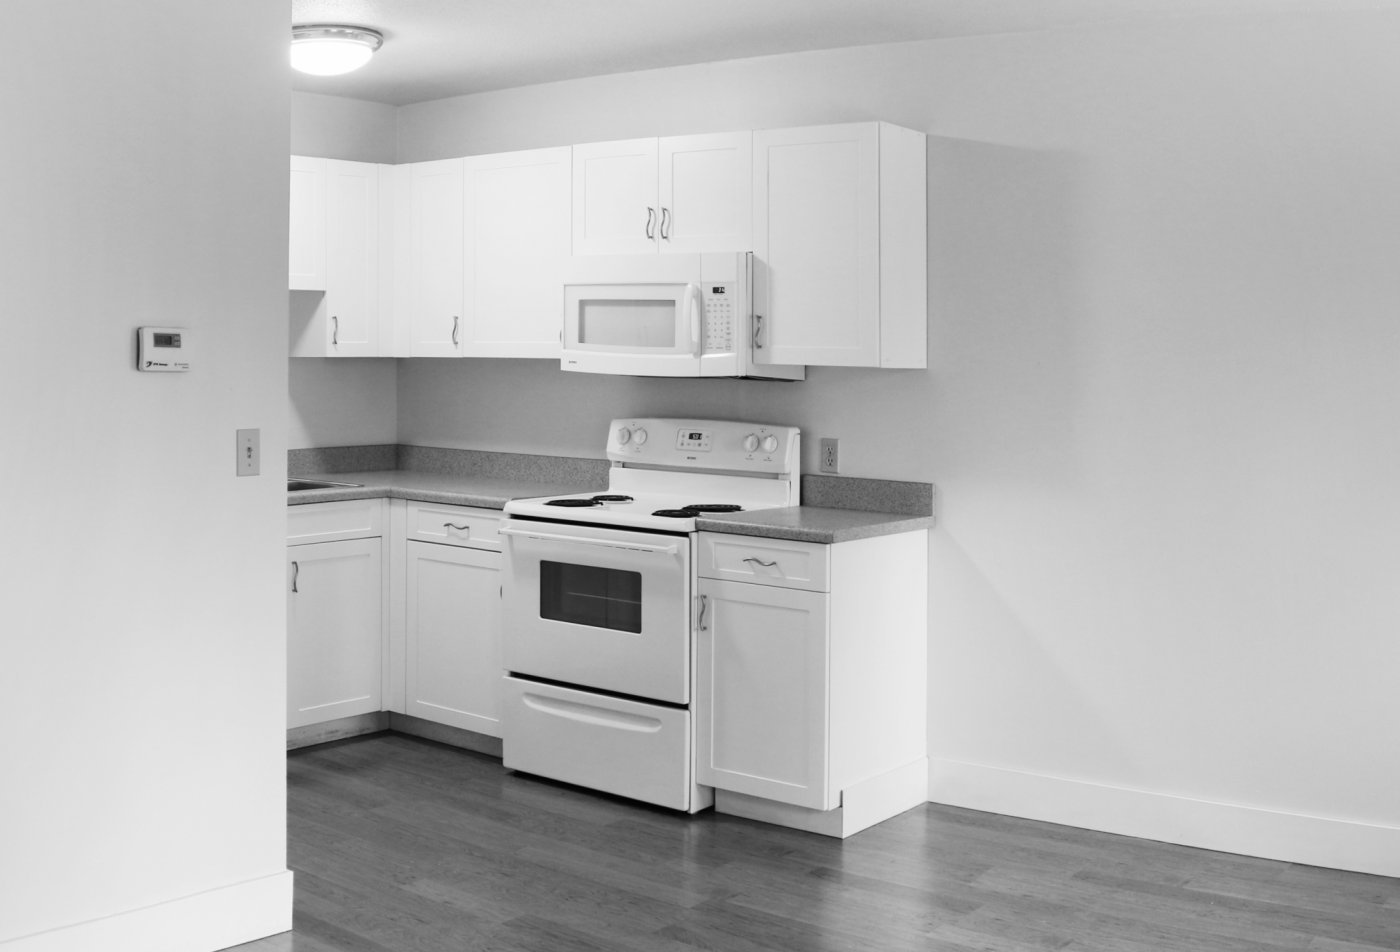 Highland Place Apartments